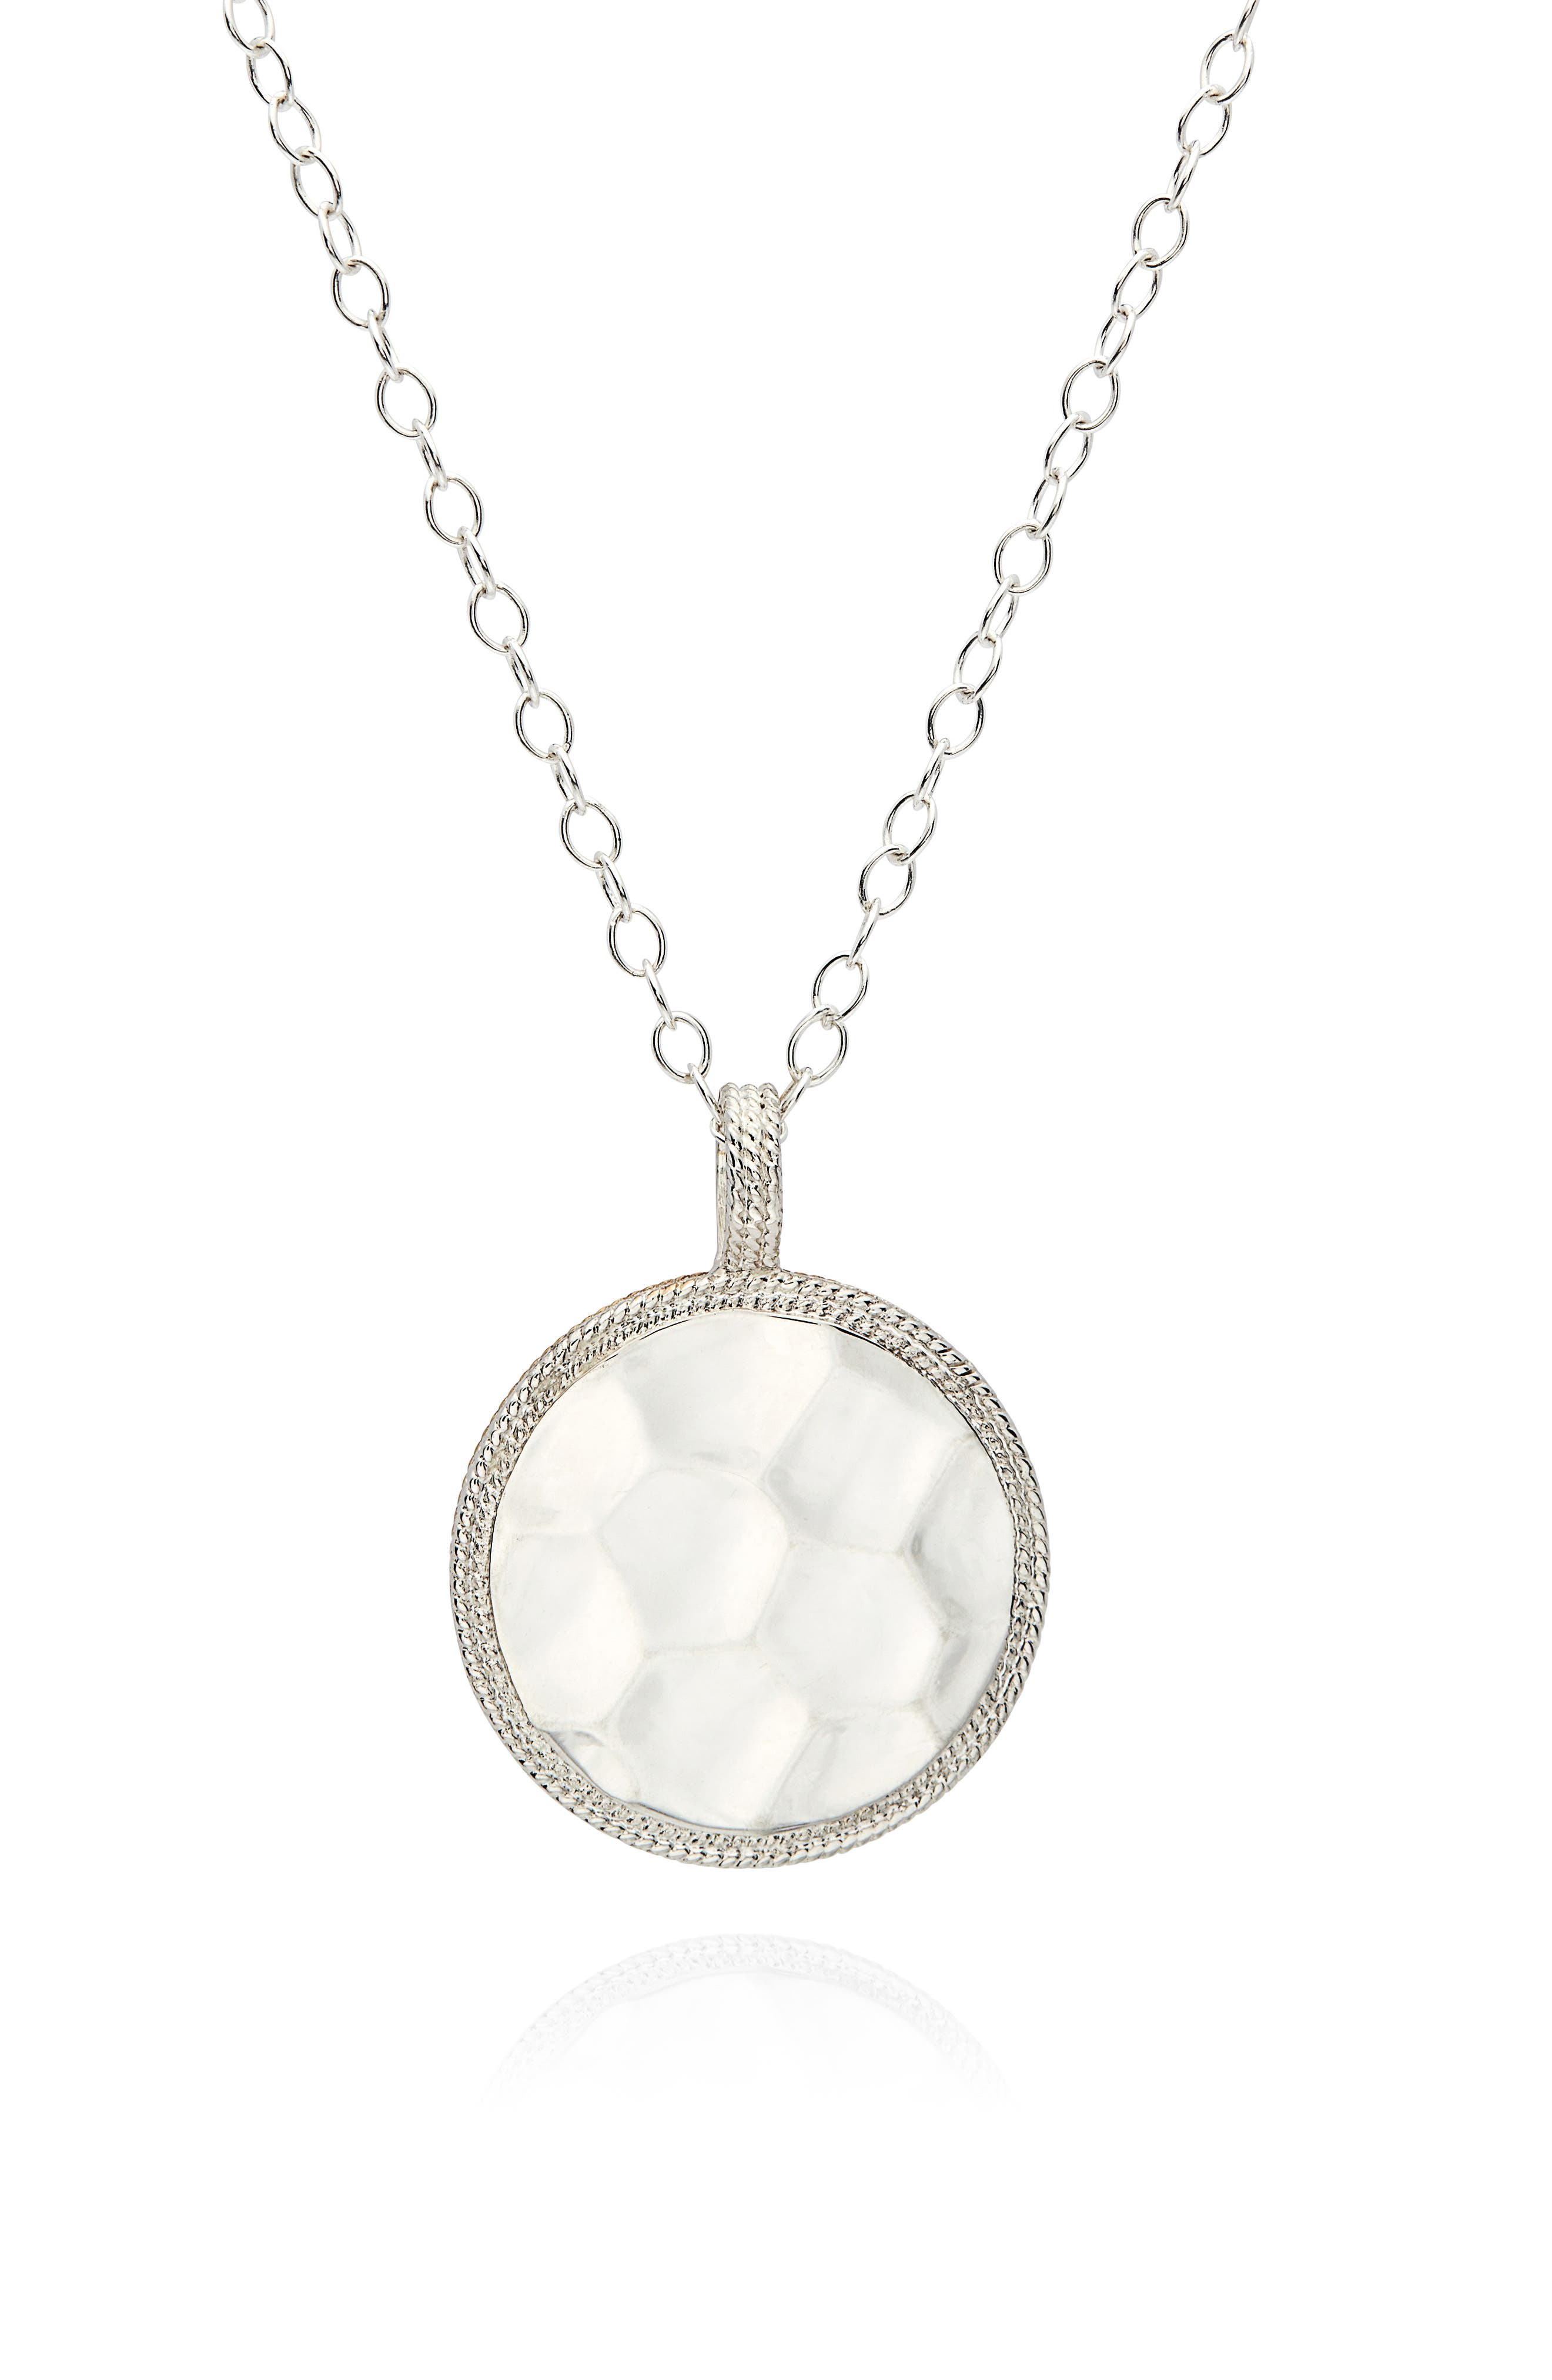 Hammered Reversible Disc Pendant Necklace